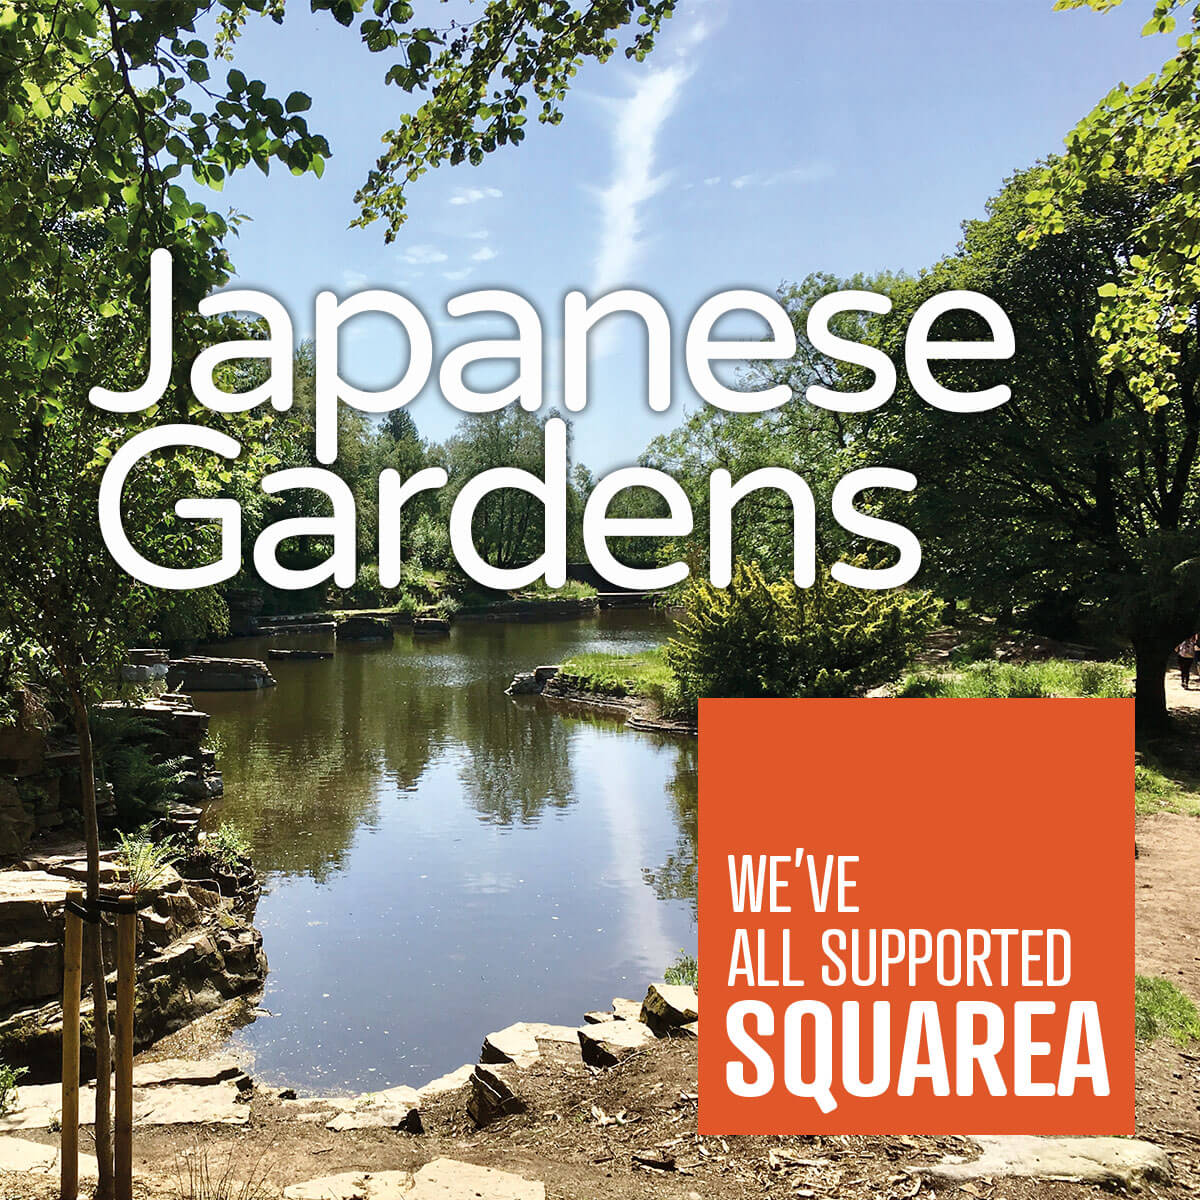 Japanese Gardens - We've all supported Squarea